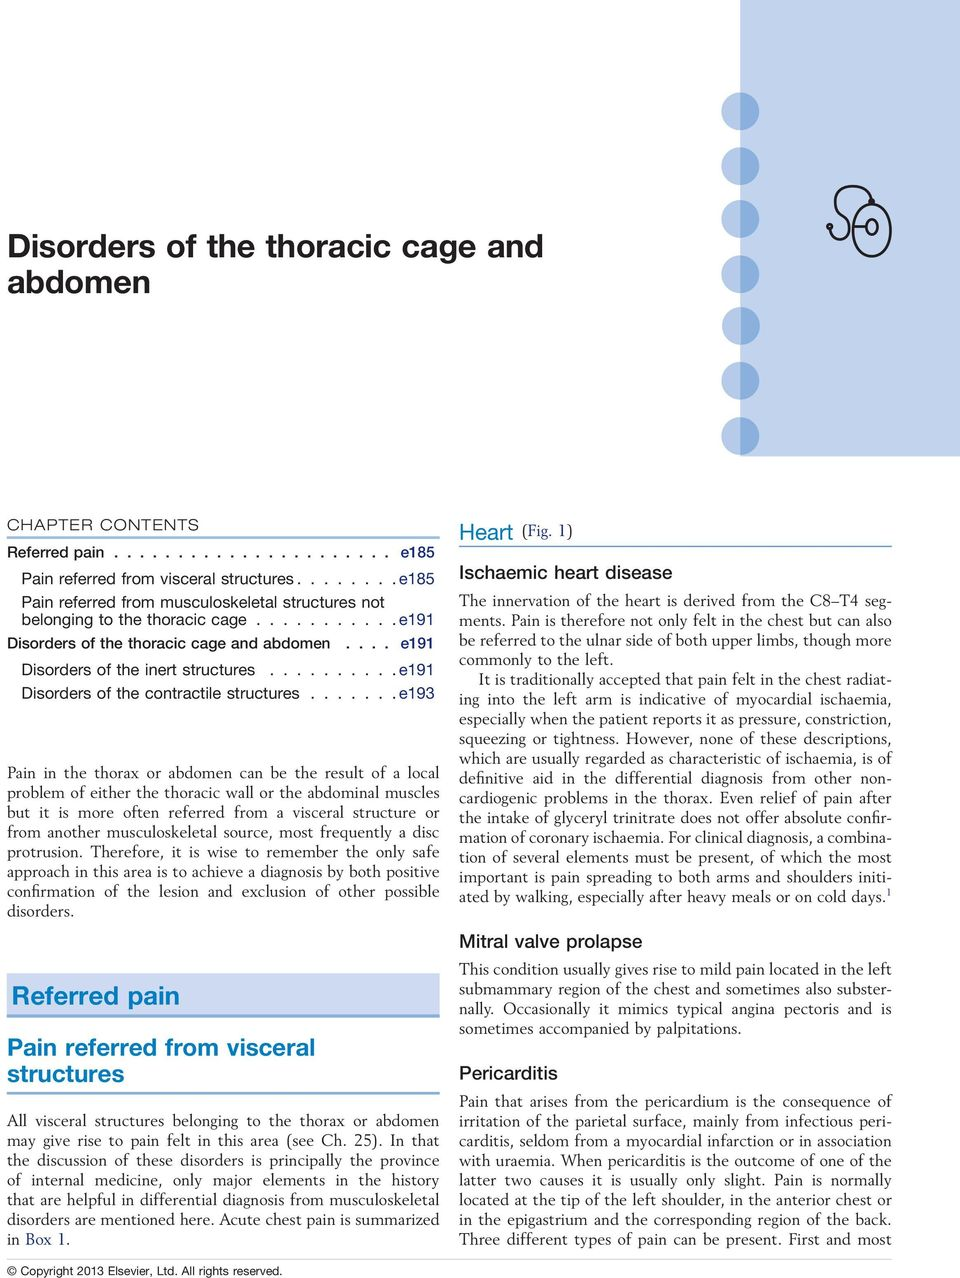 ......... e191 Disorders of the contractile structures.